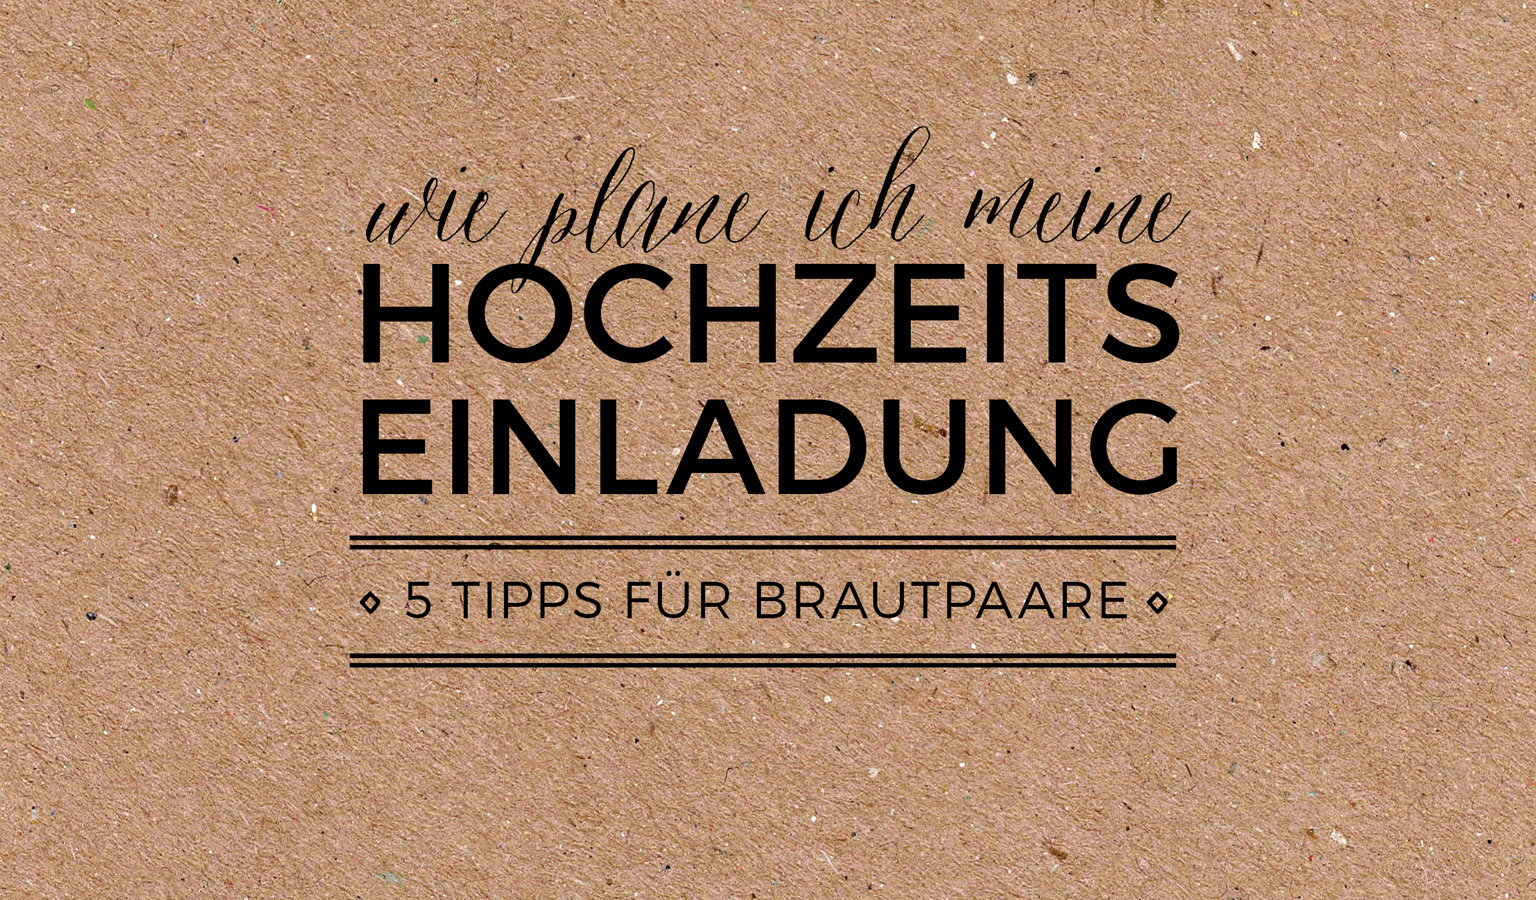 tipps f r die hochzeitseinladung was muss ich beachten sonst noch was der blog. Black Bedroom Furniture Sets. Home Design Ideas